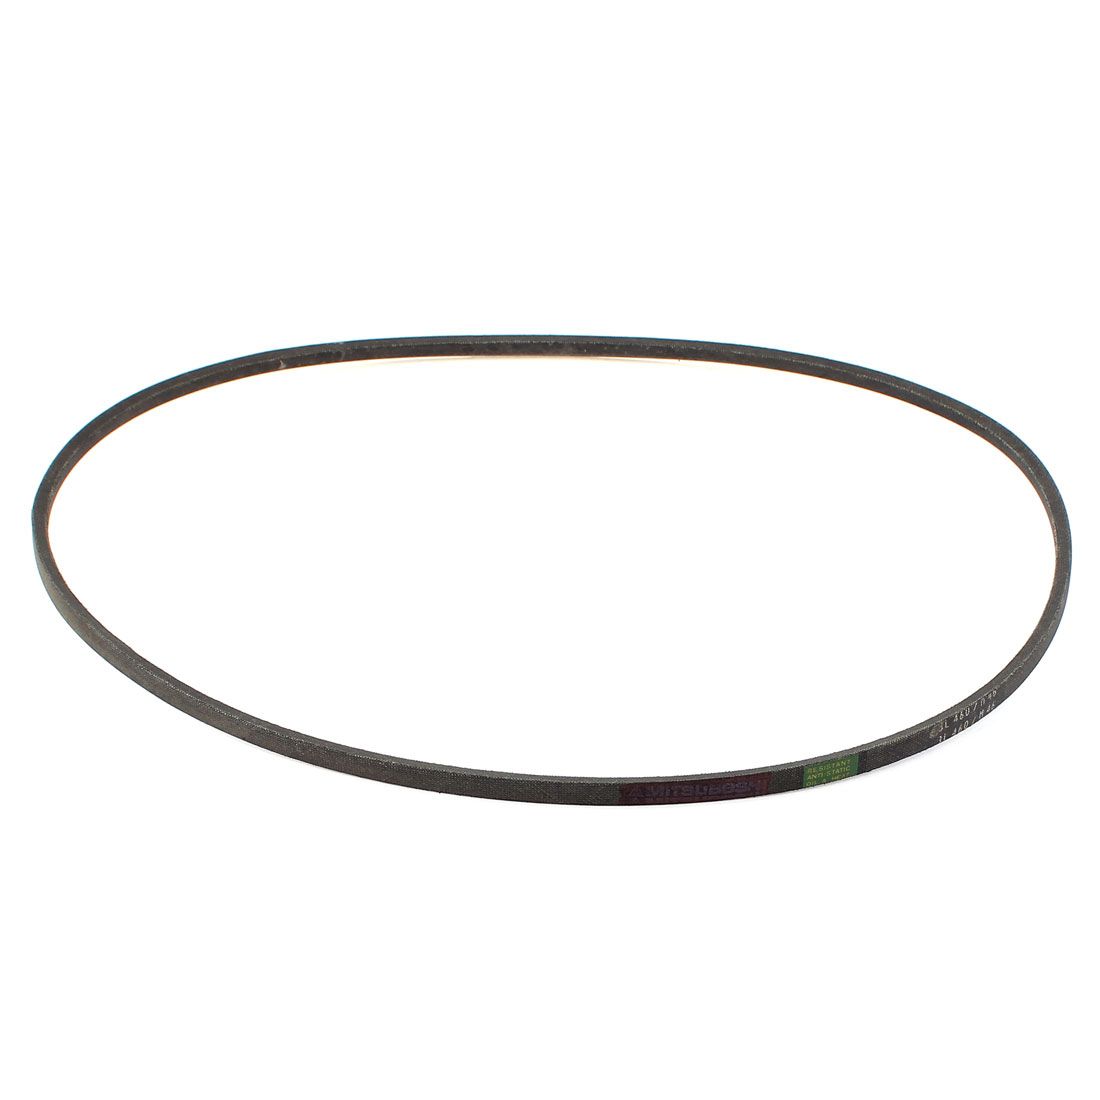 Industrial Machine Transmission Replacement 3L 460 M46 V Belt Black